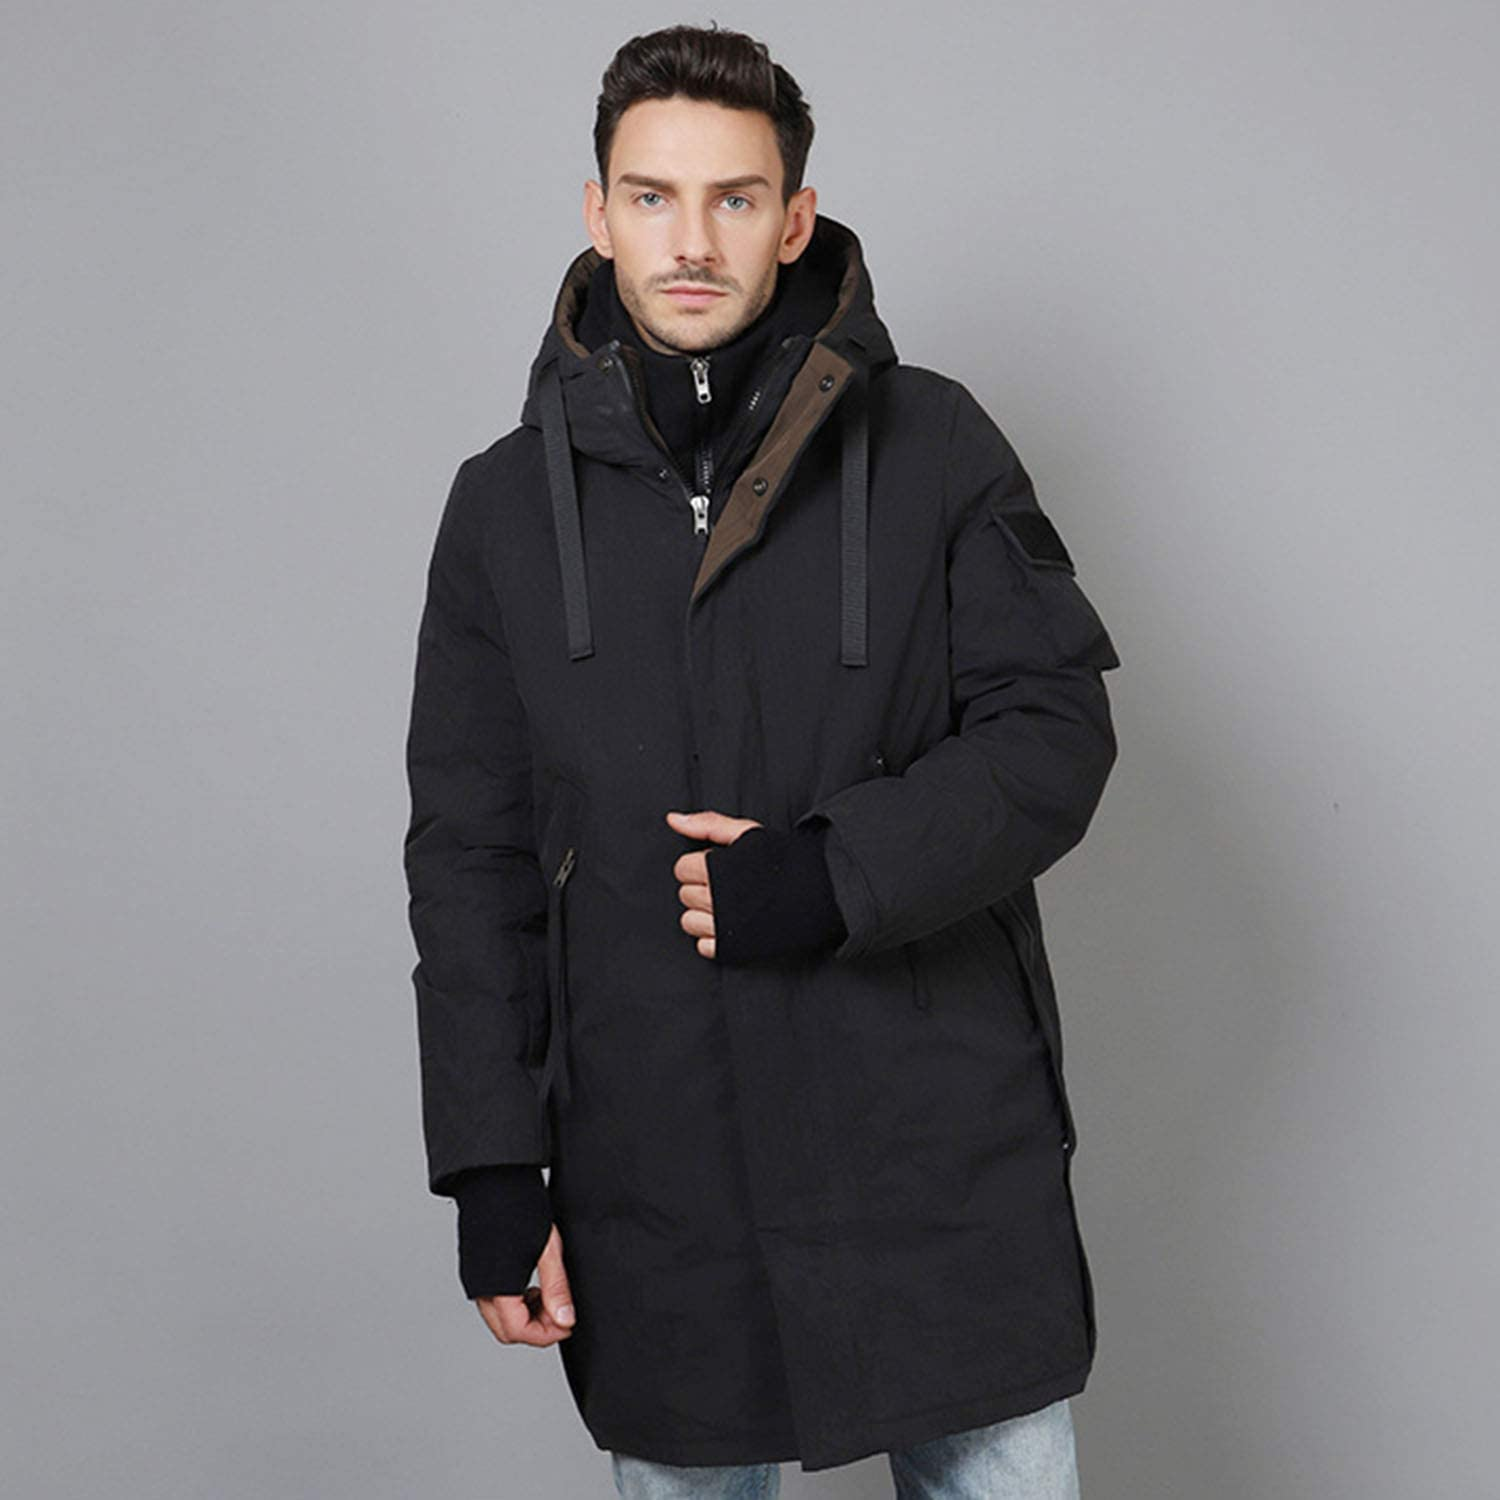 YXXHM- Long Section, Casual Solid color Zipper Thick Warm Jacket Male,Young White Duck Down Jacket Men